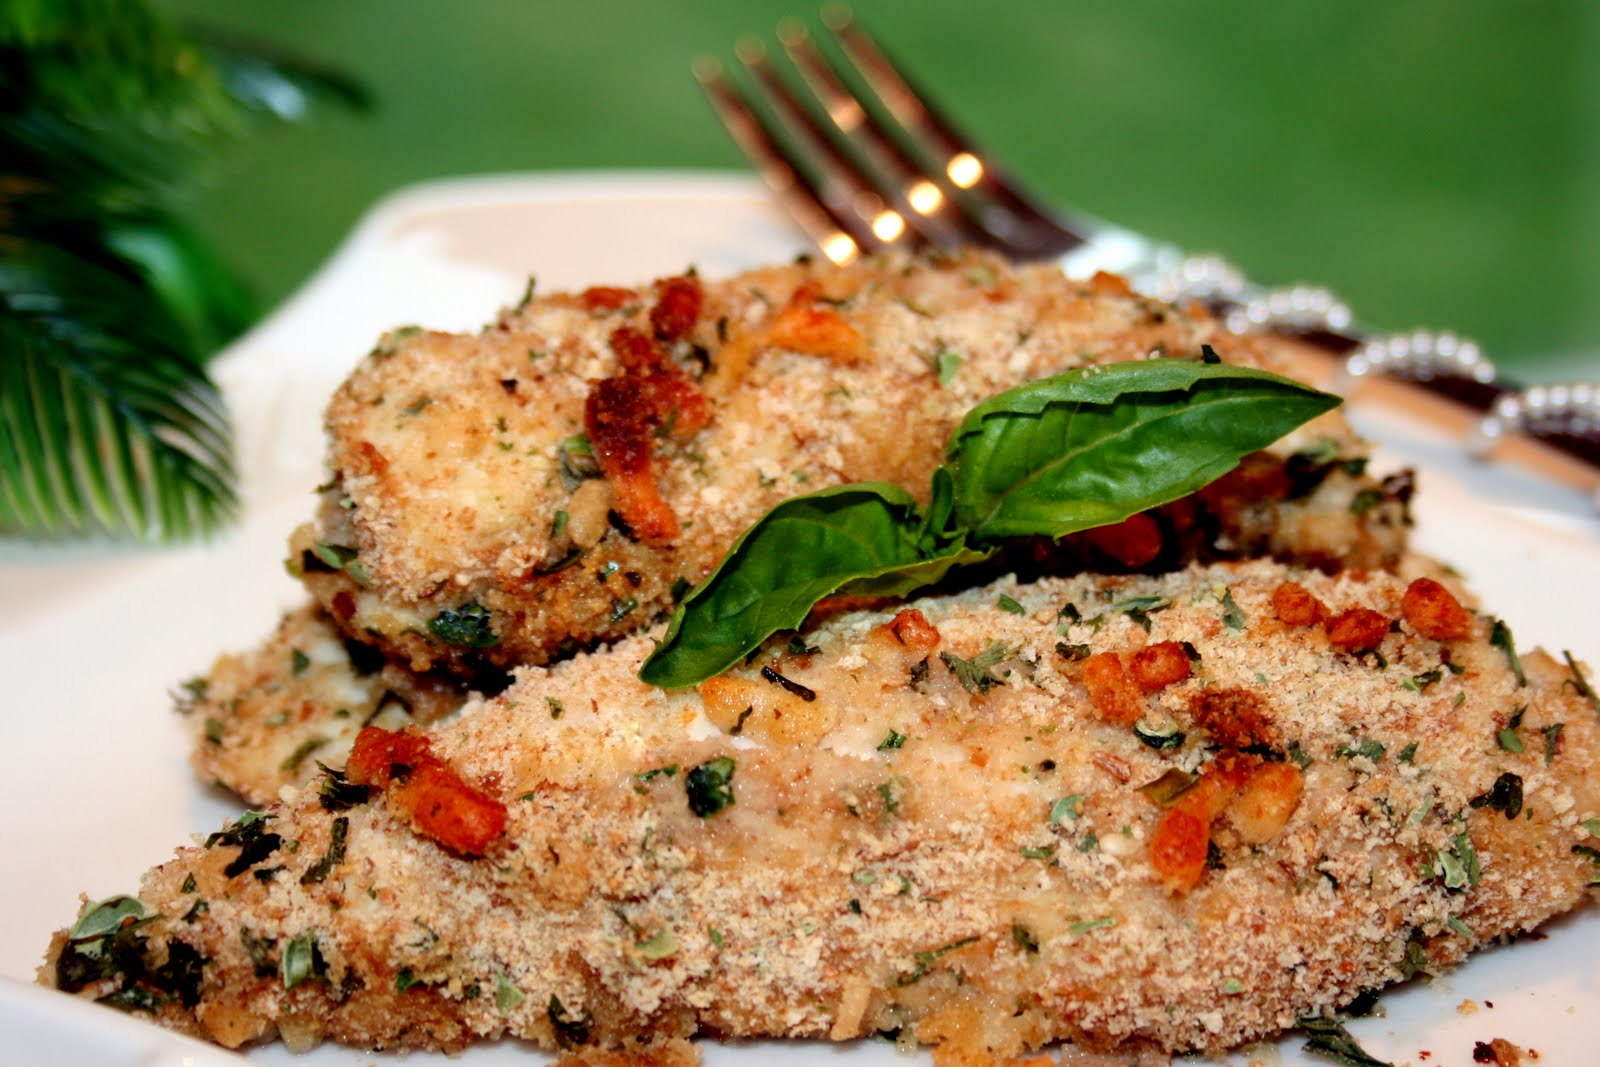 Tink's Treats: Oven-Baked Chicken Romano